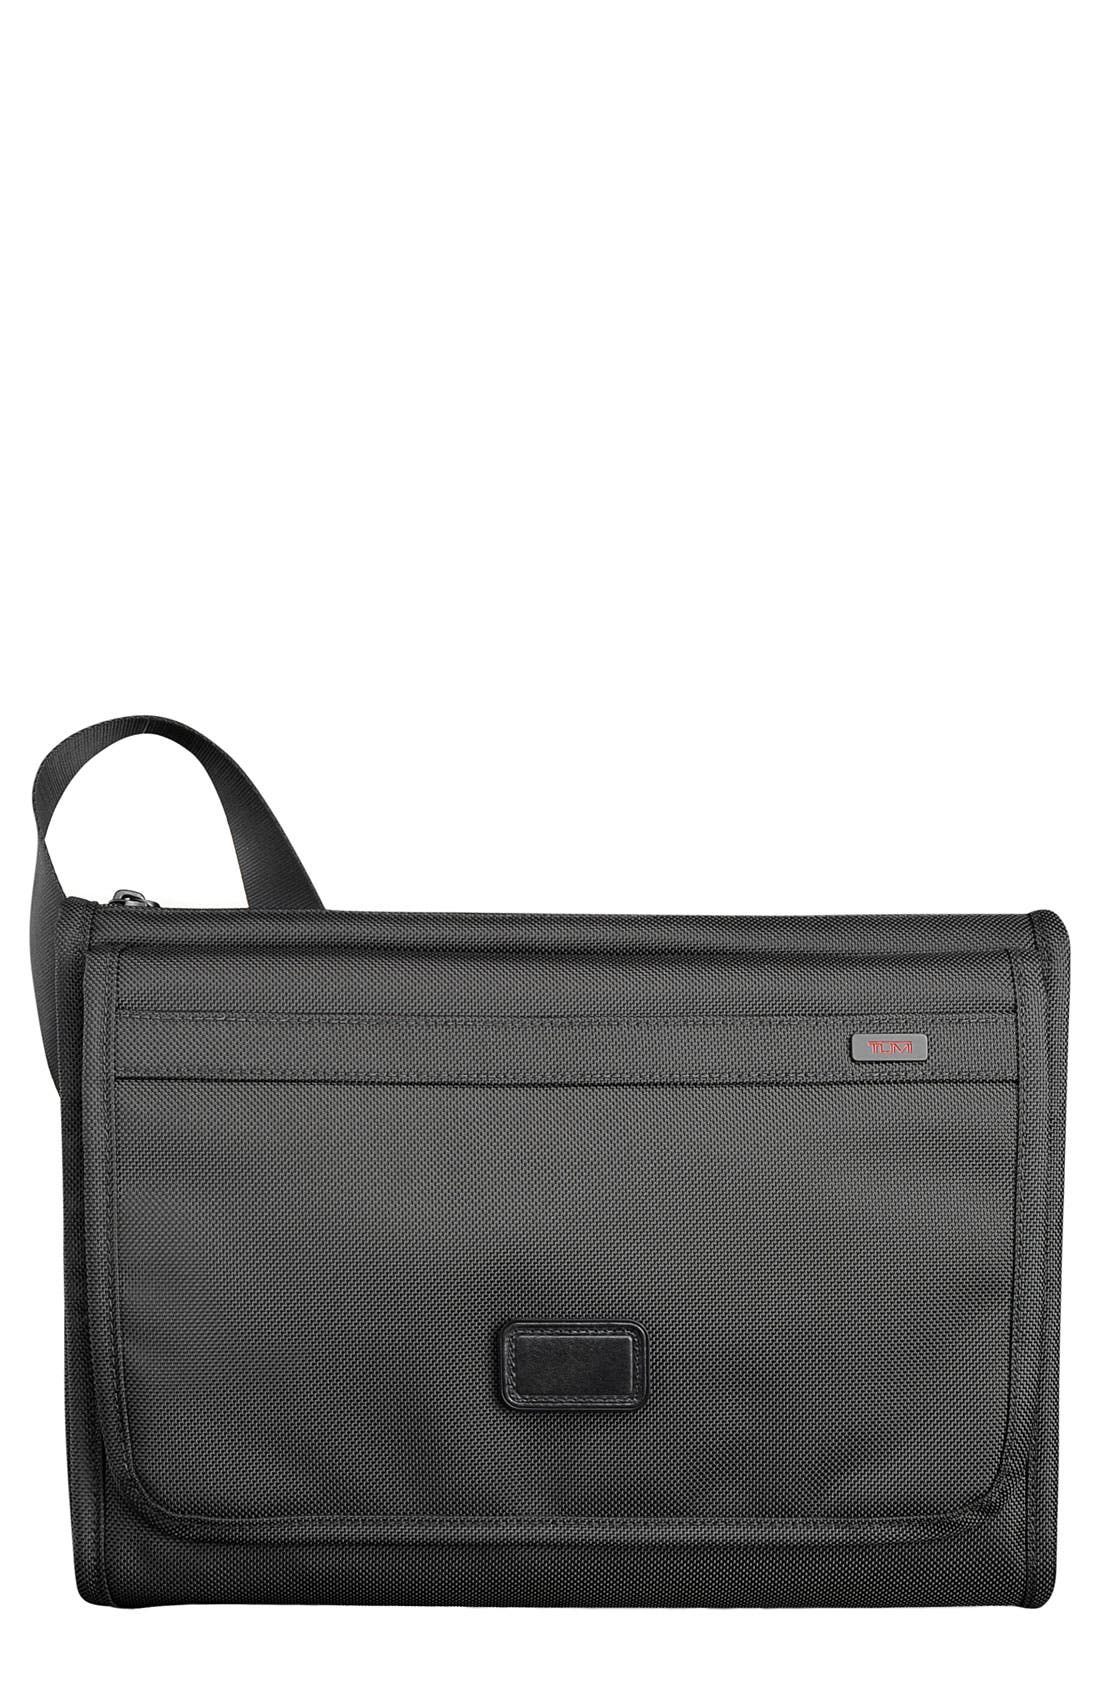 Main Image - Tumi 'Alpha' Flap Zip Crossbody Bag